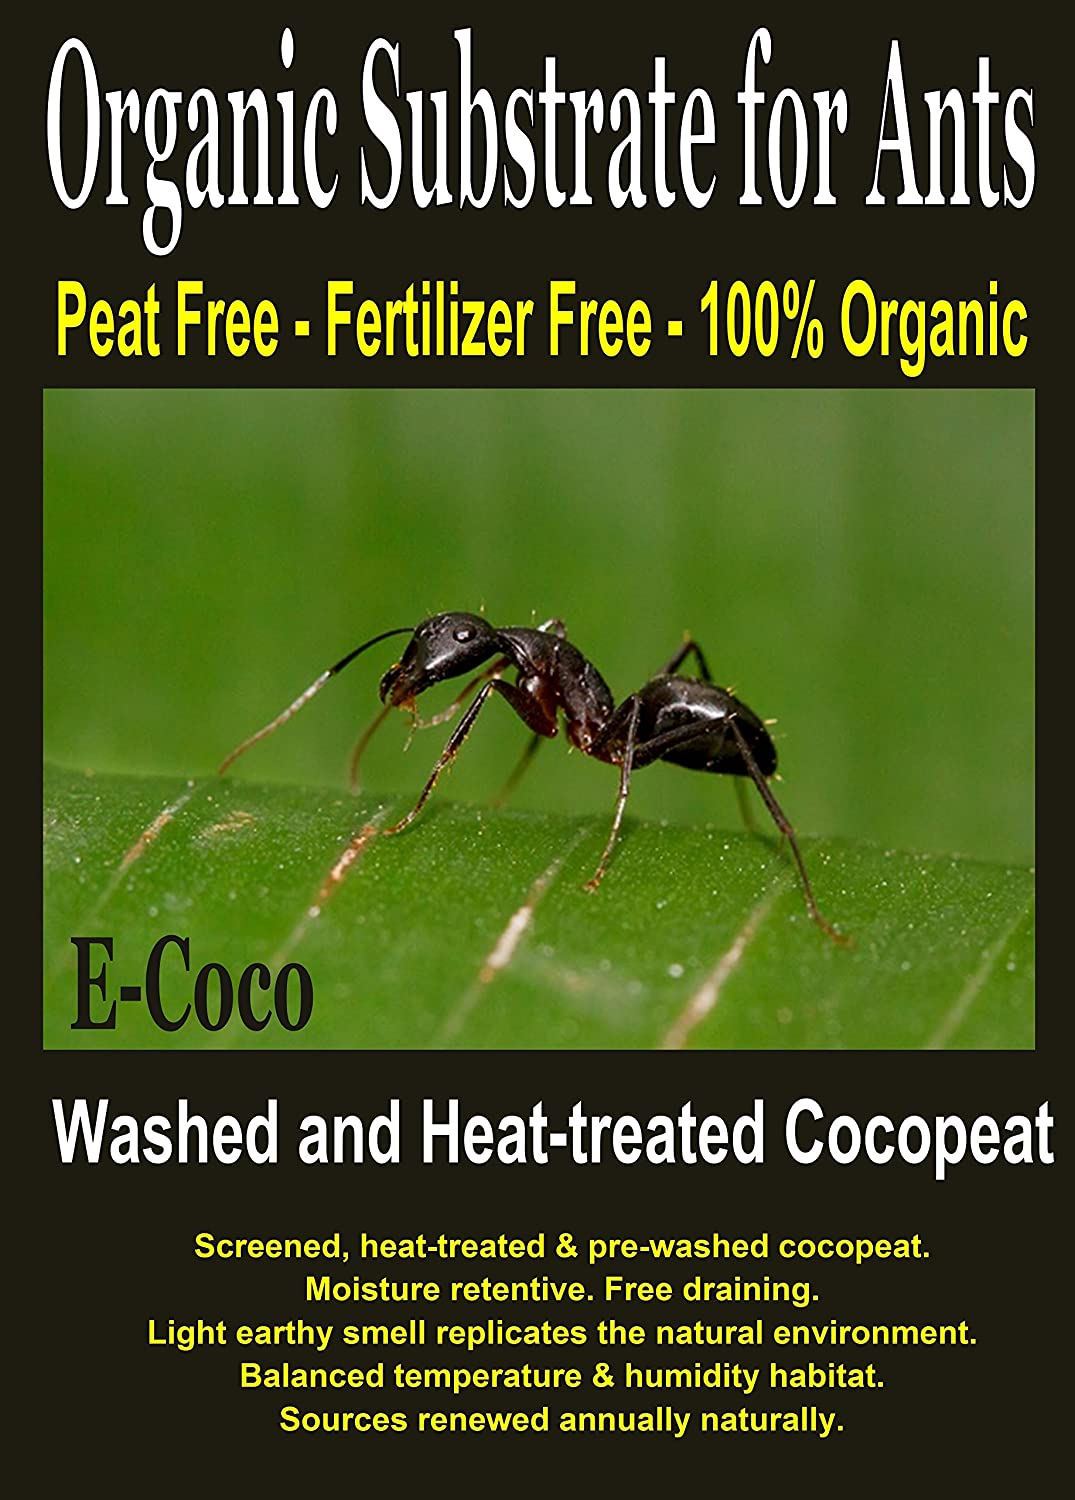 ANT FARM ORGANIC SOIL - ANT FARM SAND SUBSTITUTE, ANT GEL ALTERNATIVE, ANT BEDDING, ANT SOIL (1 LITRE) E-Coco Products UK